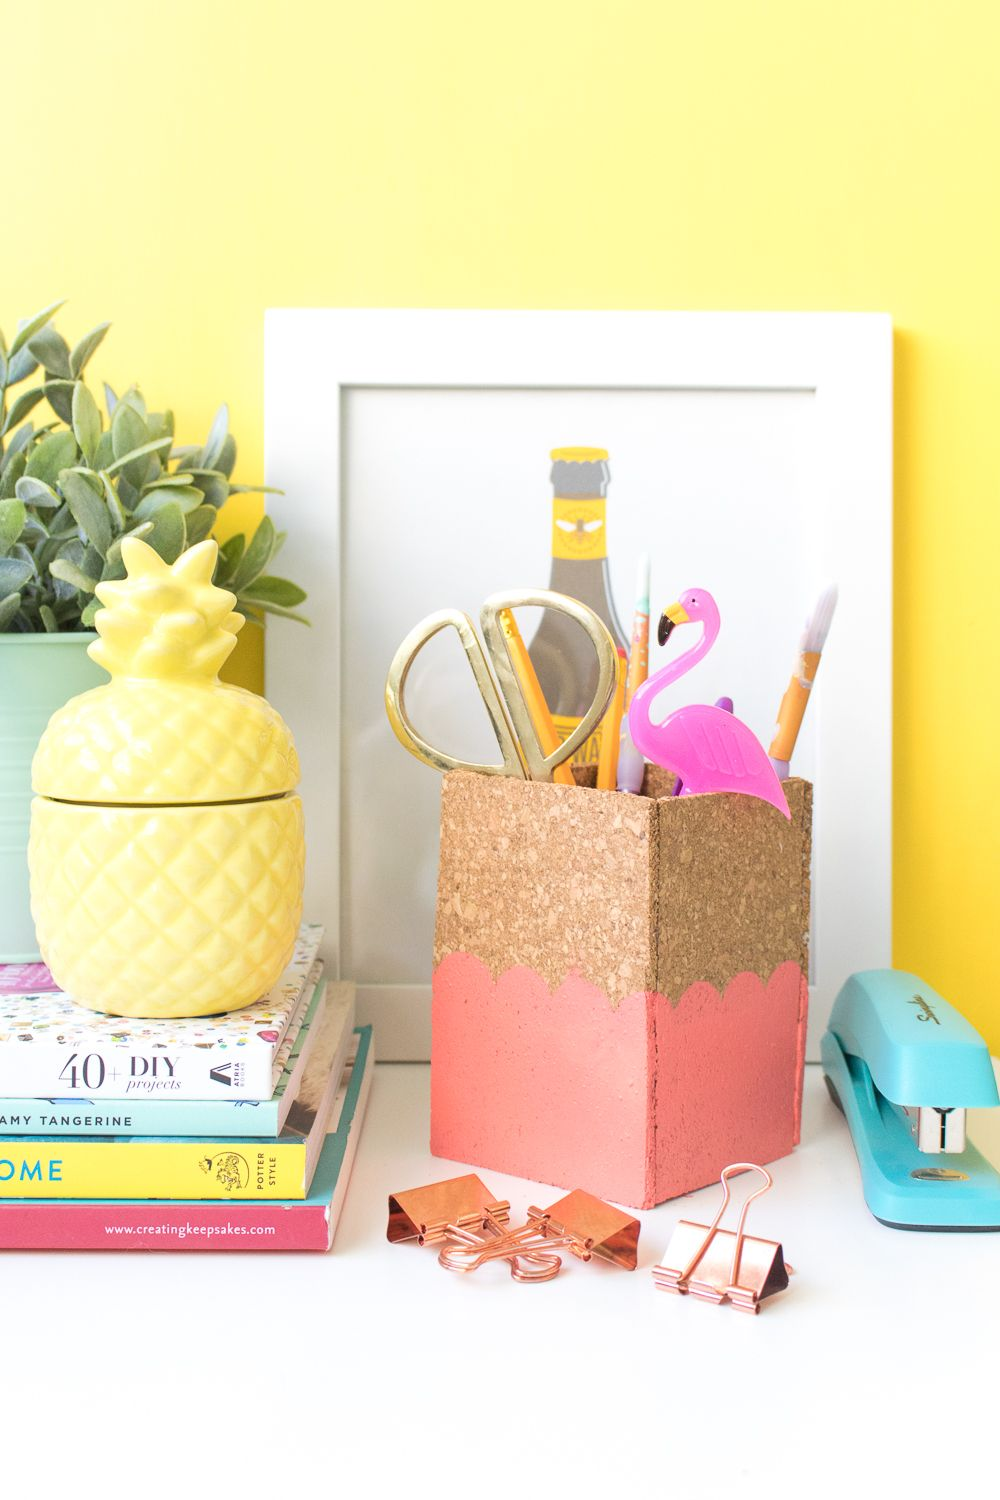 diy office supplies. Make A DIY Scalloped Cork Pencil Cup For Organizing Office Supplies On Your Desk In Simple Made From Board And Painted Fav Color! Diy